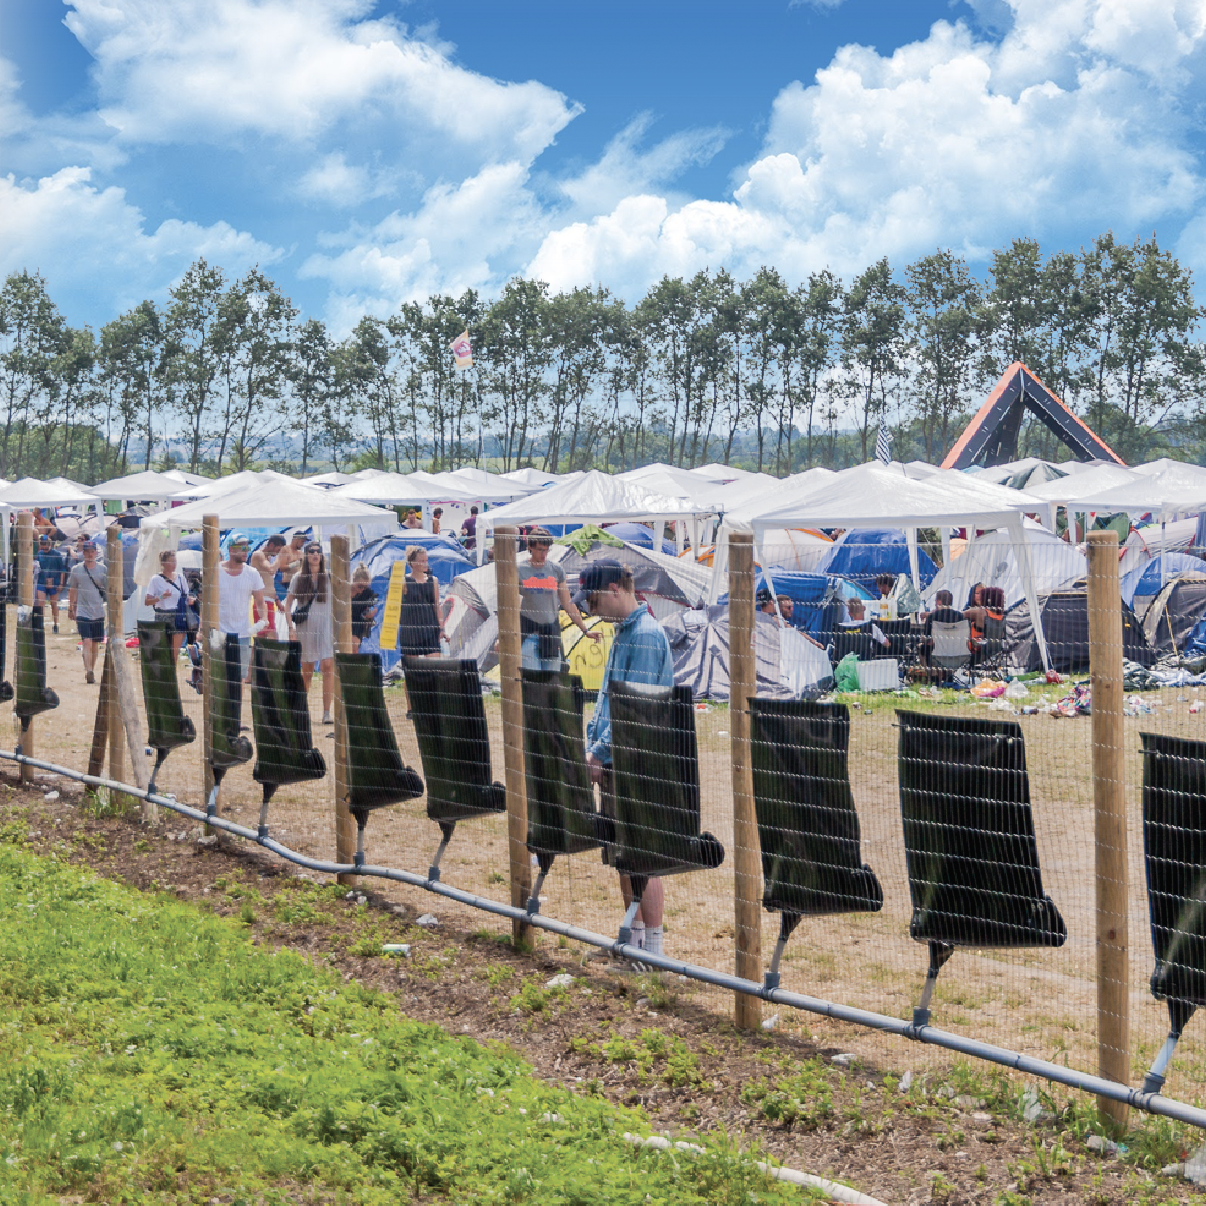 Photo of Peefence urinals on the fence at Roskilde Festival